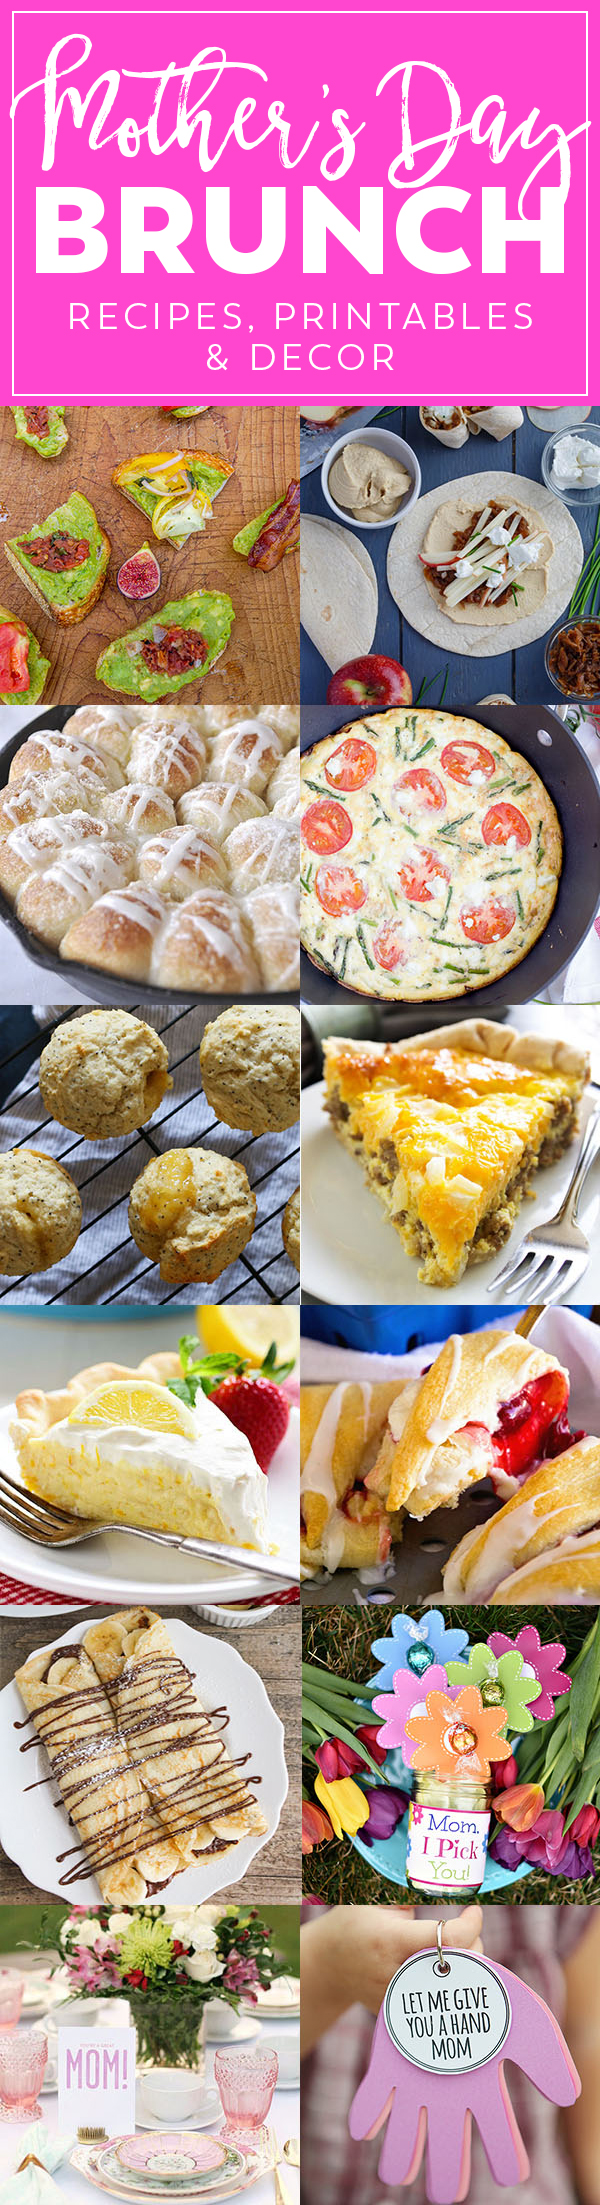 Mother's Day Brunch Meal Plan | Mother's Day Recipes, Printables and Decor